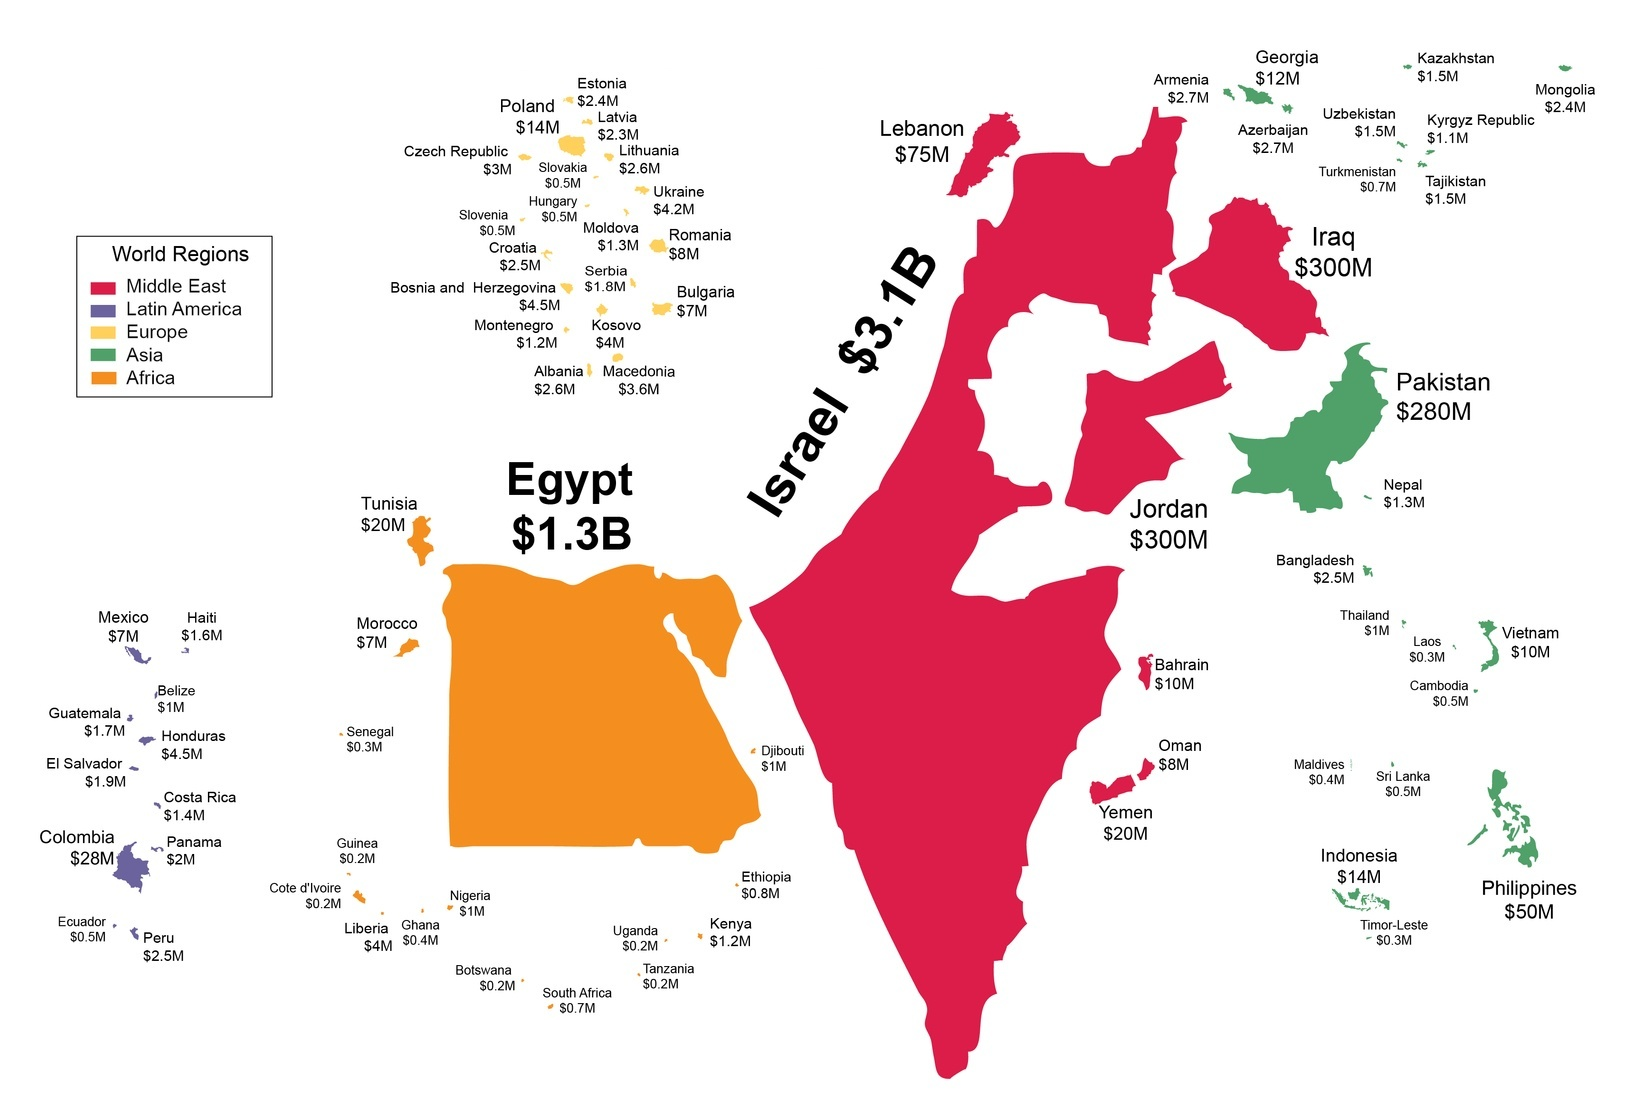 U.S. Foreign Military Financing (2014), Scaled According to the amount of Assistance Received (HowMuch.Net)